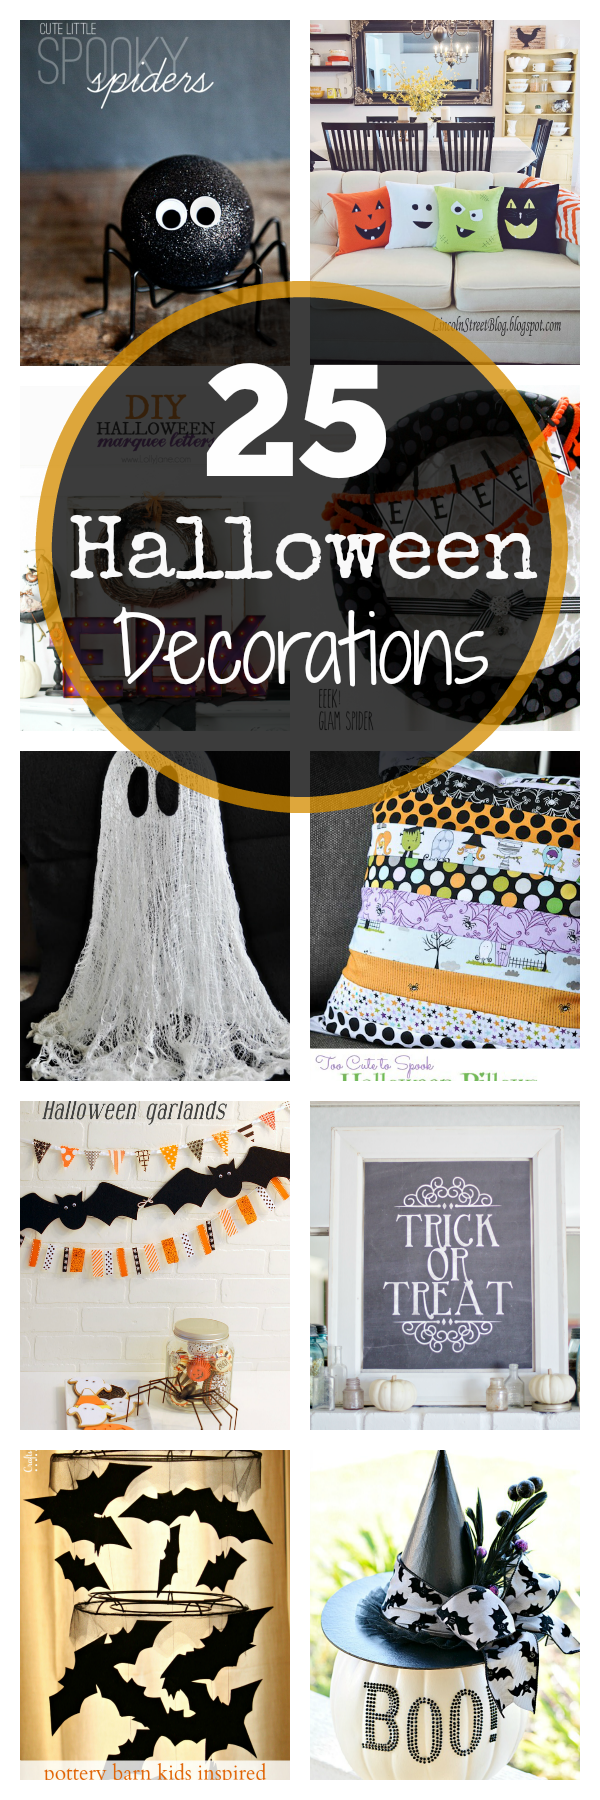 25 Fun DIY Halloween Decorations-Cute things to make to decorate for Halloween that you're going to love! #halloween #decor #halloweendecor